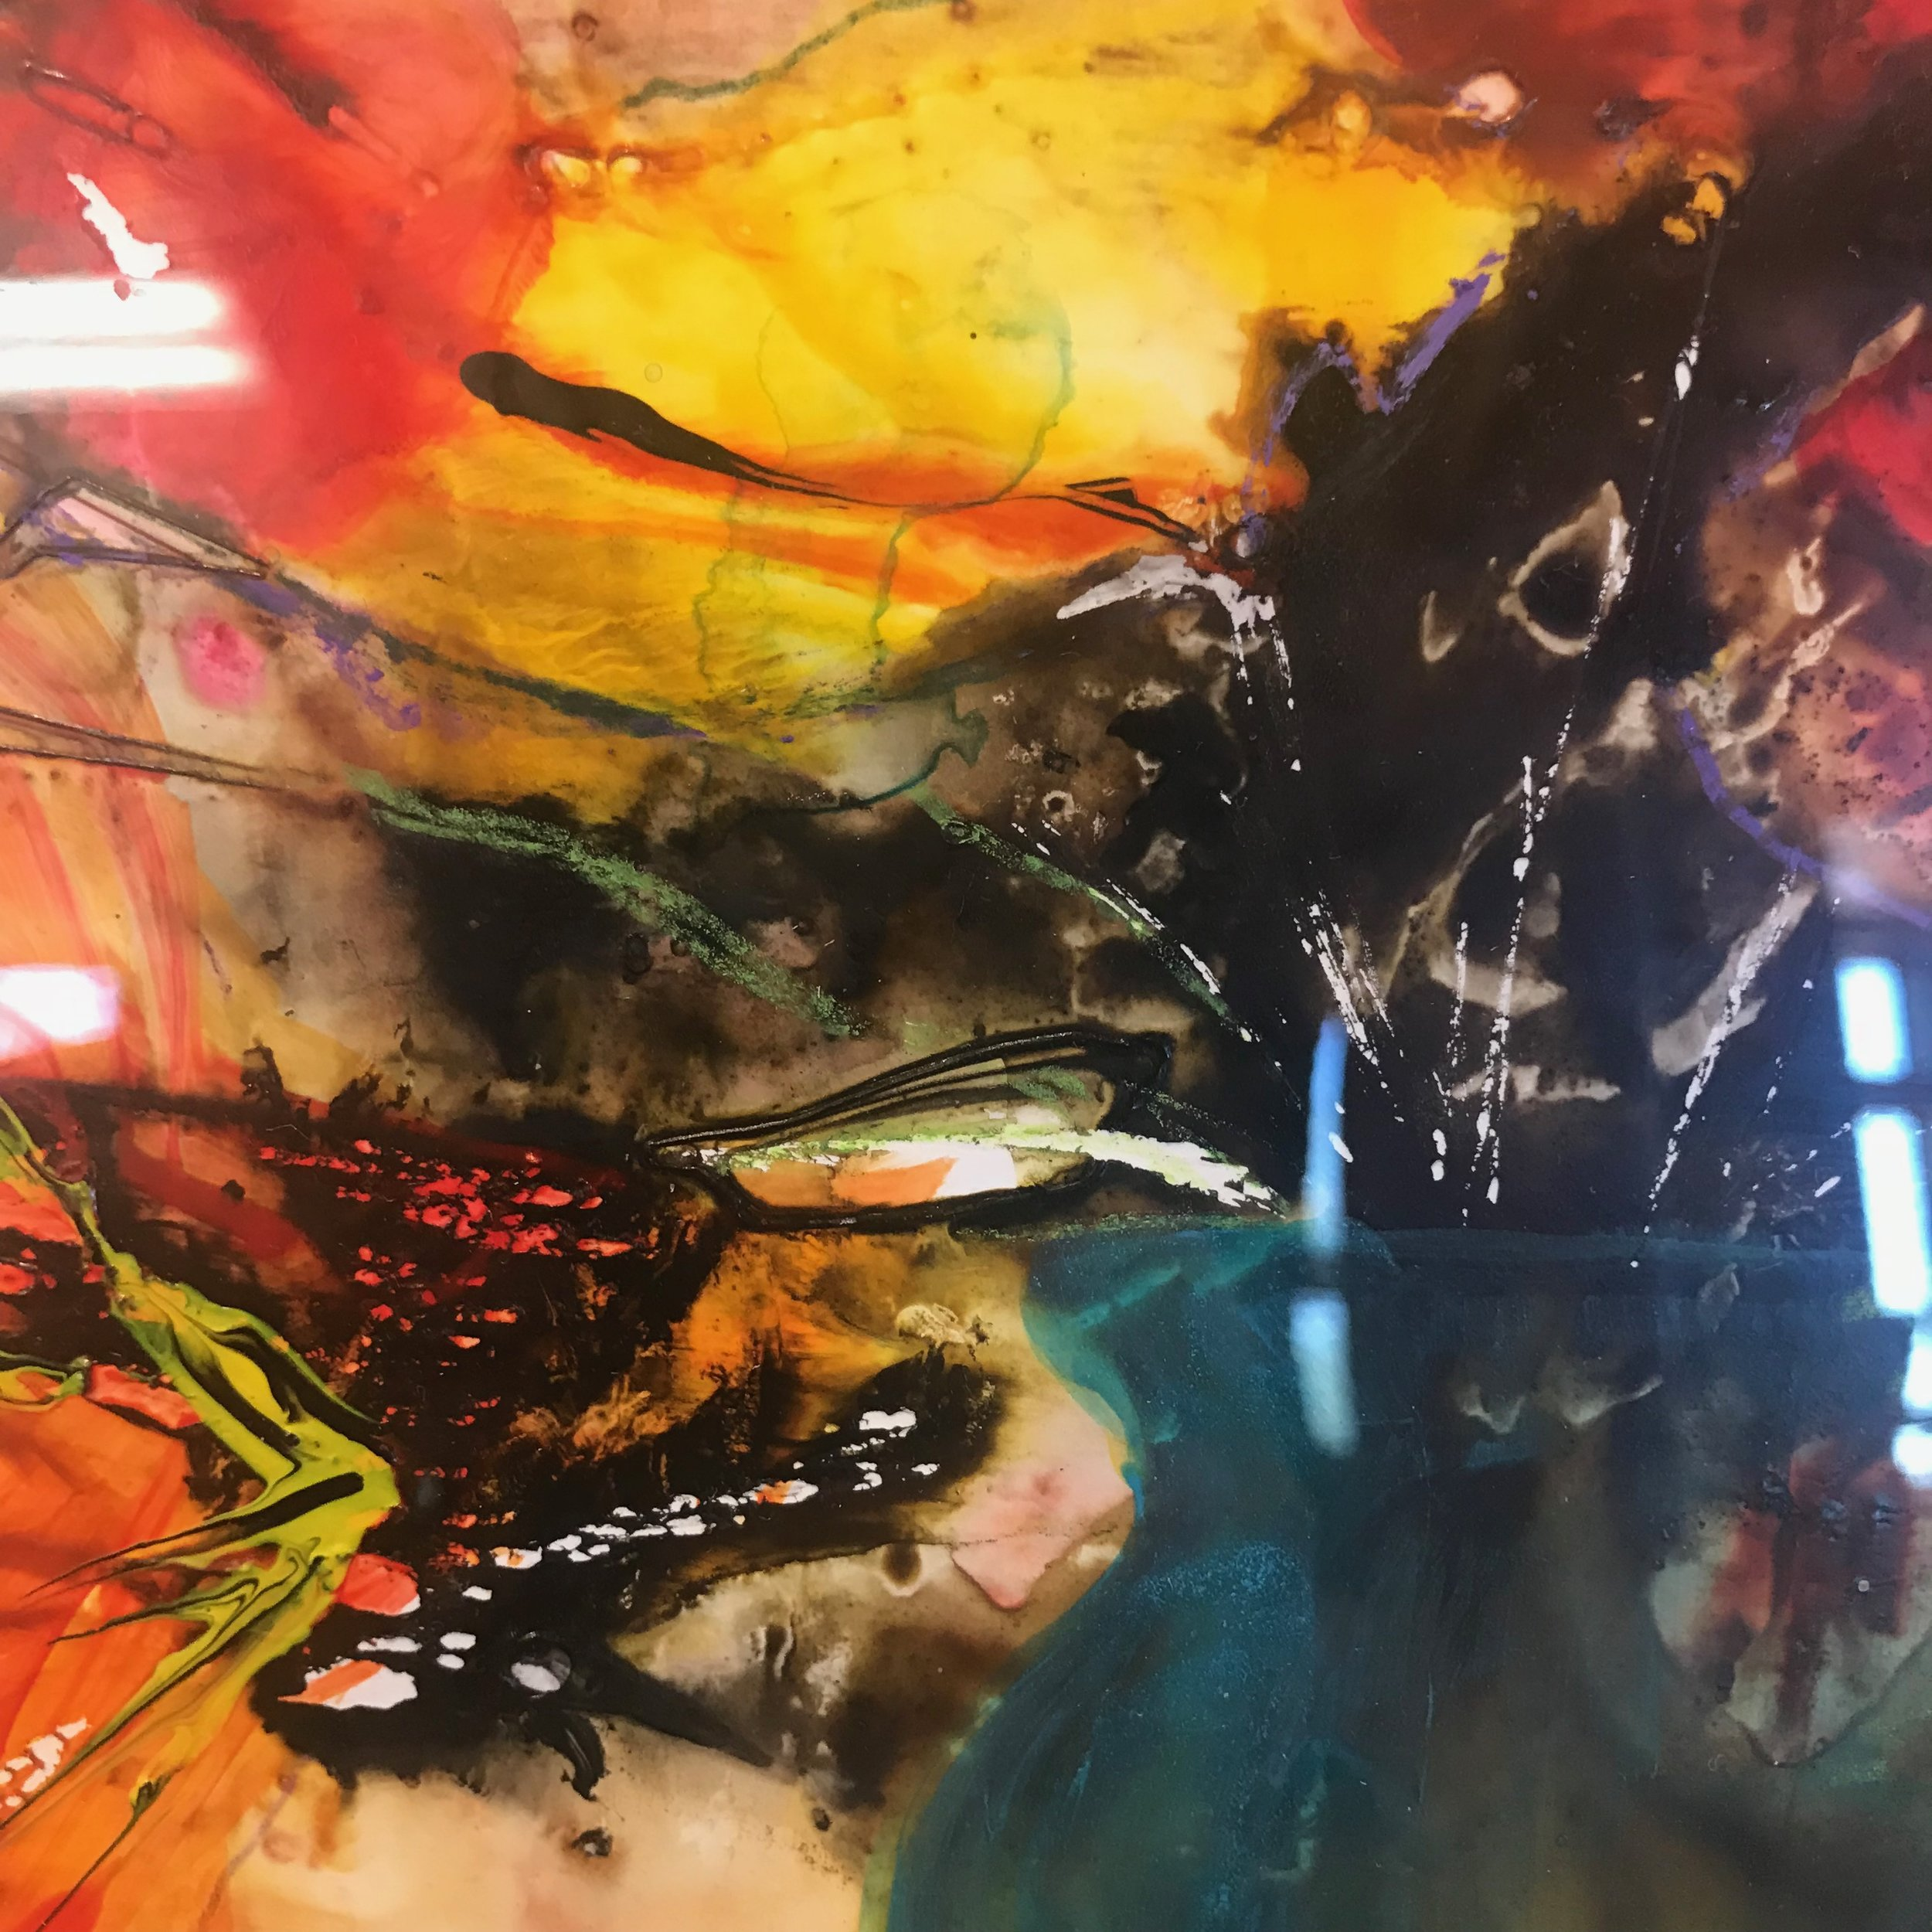 Mixed media collage by Michele Auger